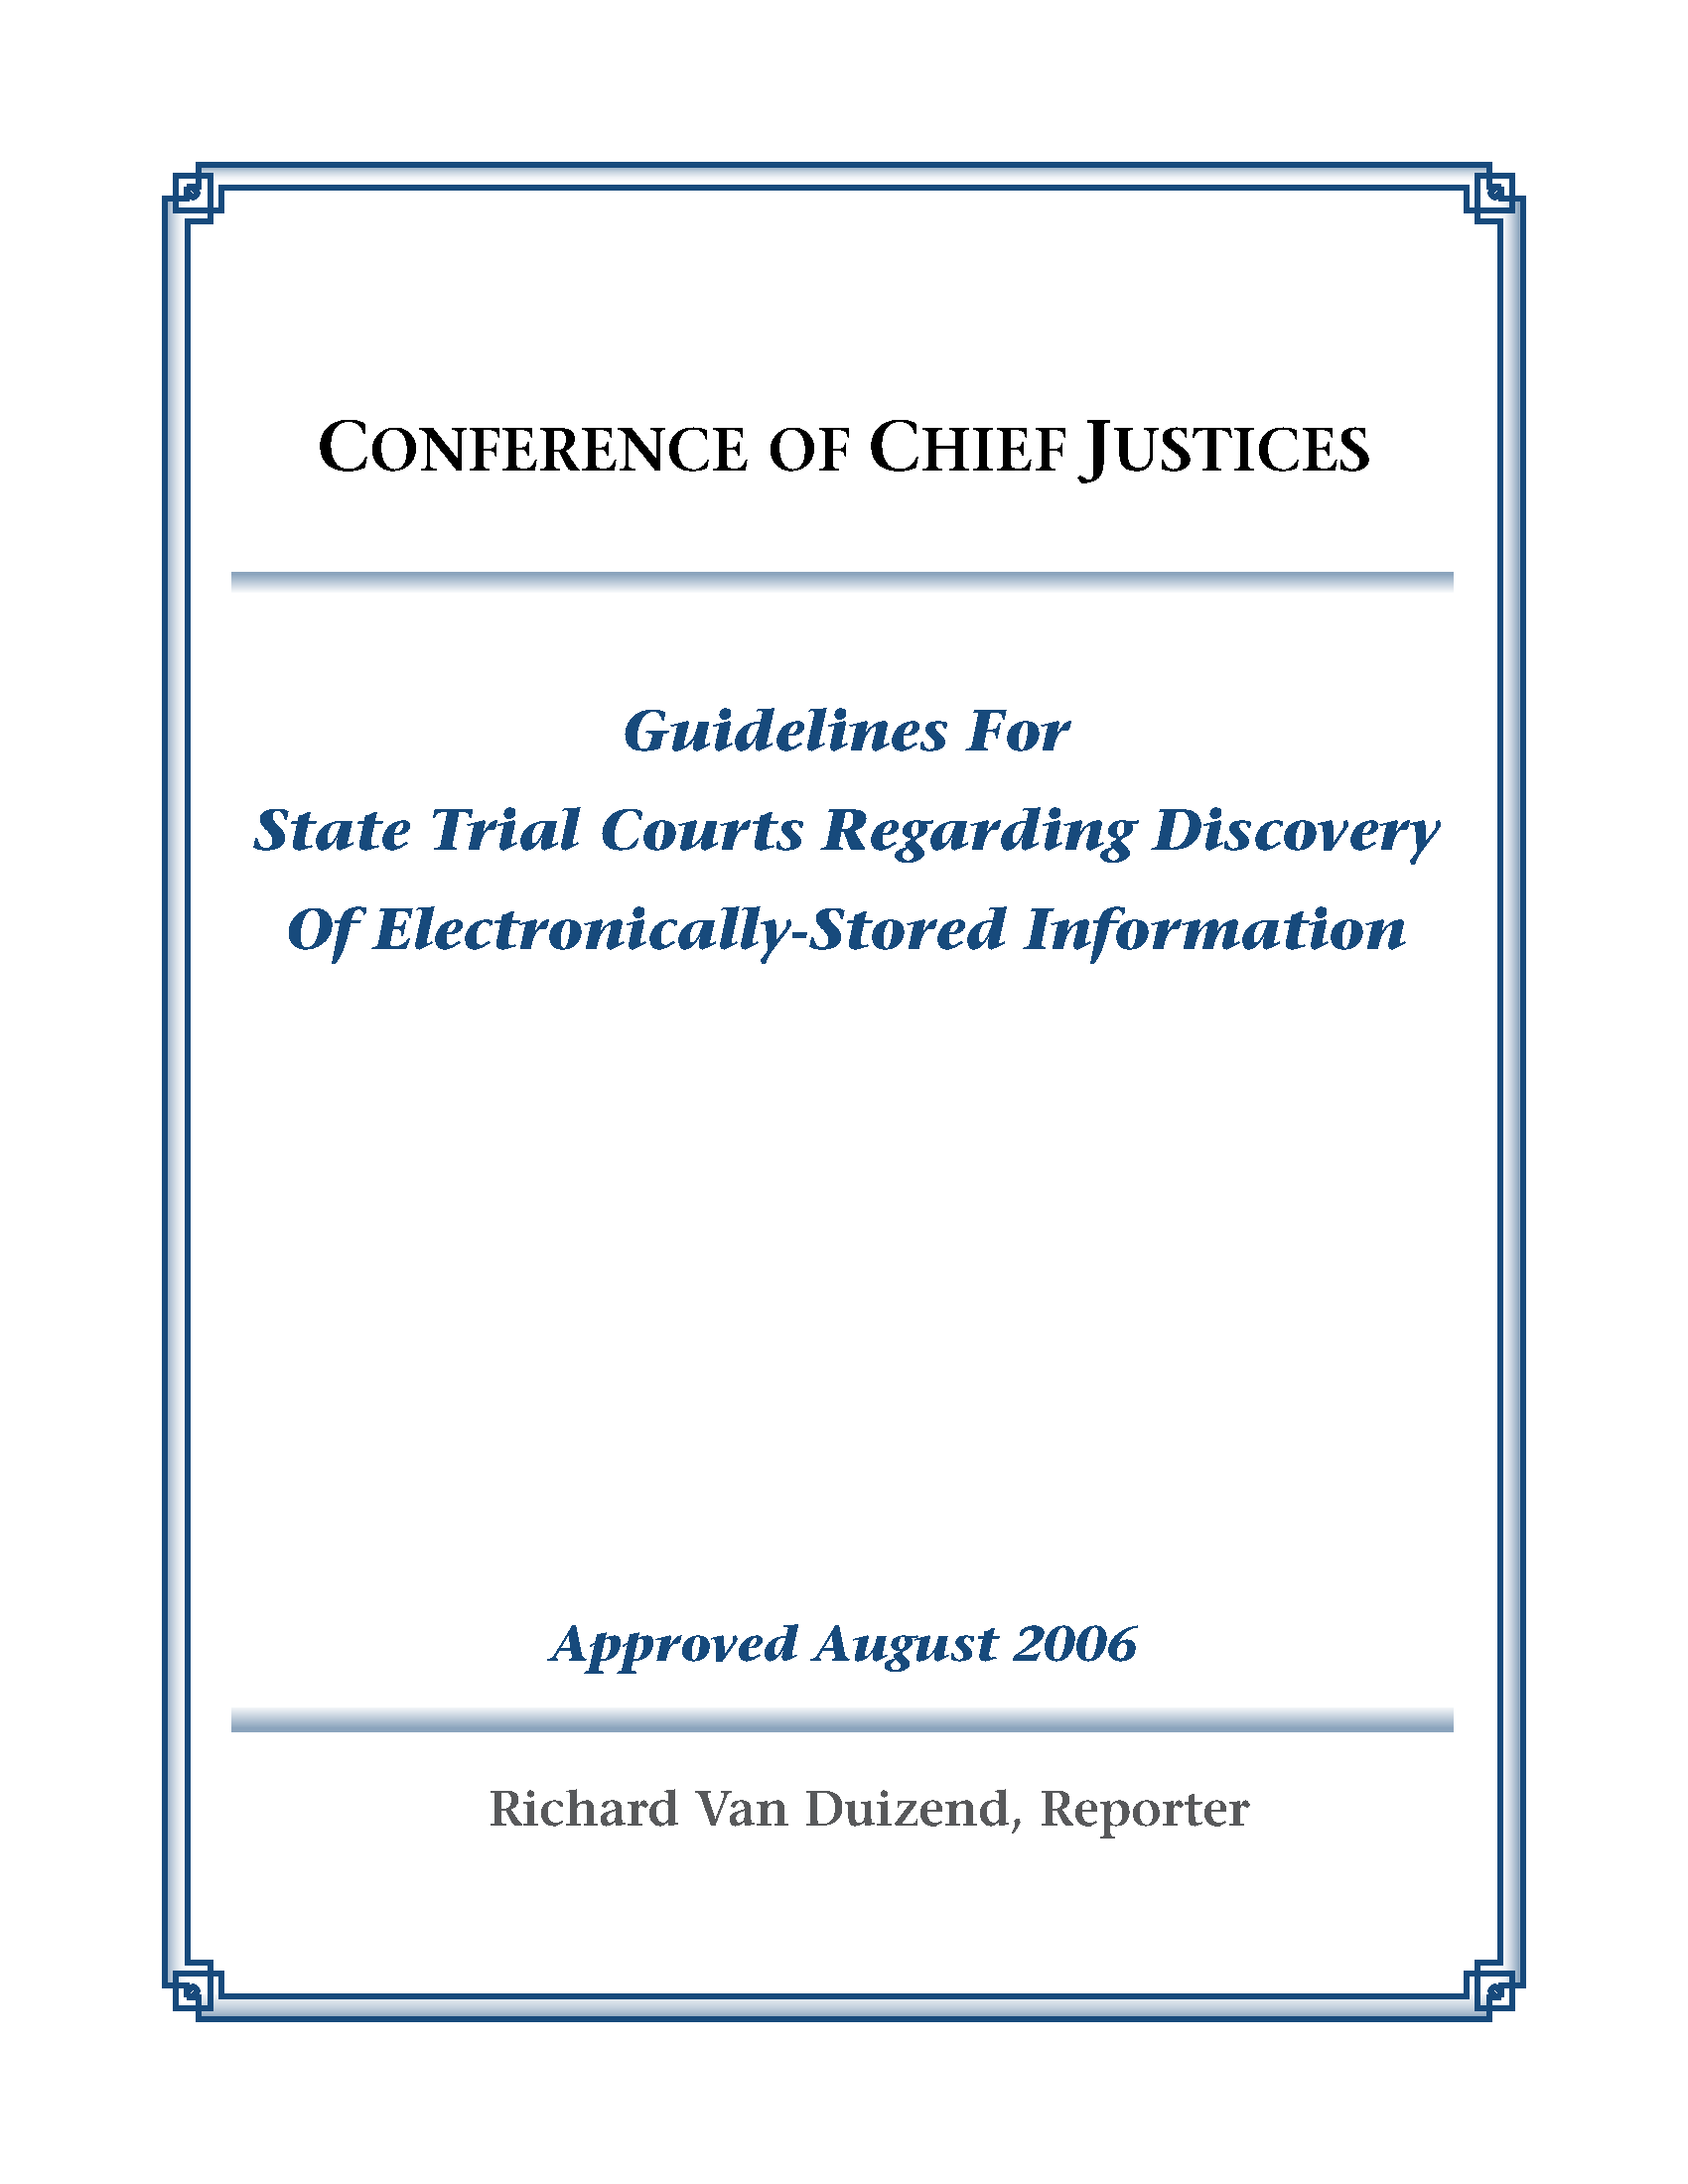 Guidelines For State Trial Courts Regarding Discovery Of Electronic Circuits Questions And Answers Pdf Electronically Stored Information